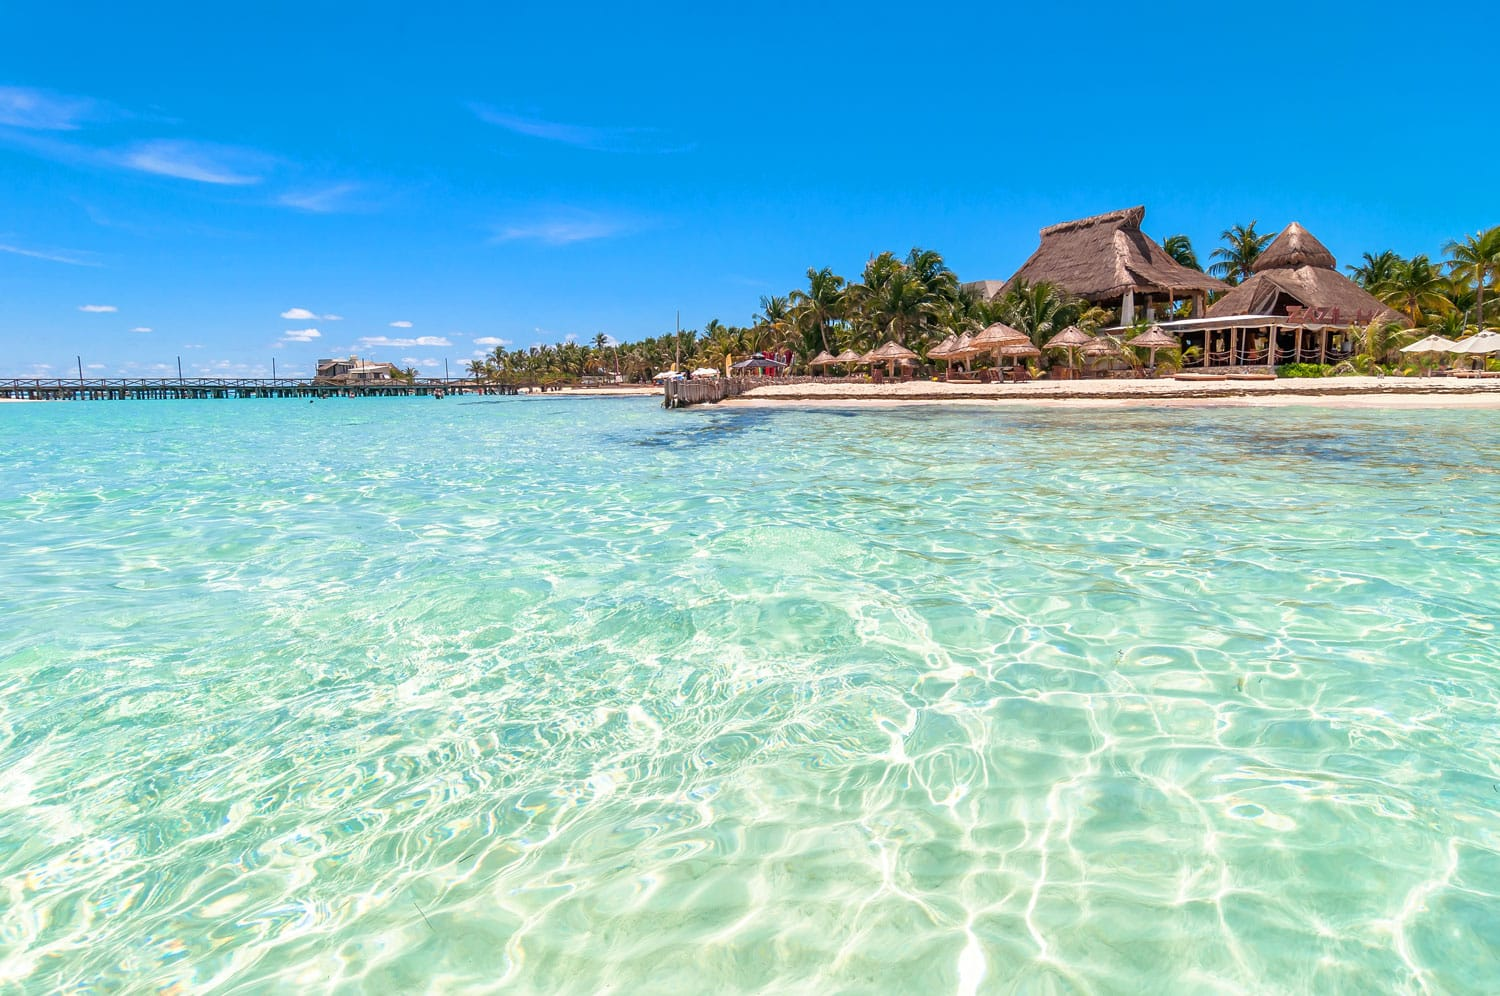 Tropical sea and coastline on famous Playa del Norte beach in Isla Mujeres, Mexico